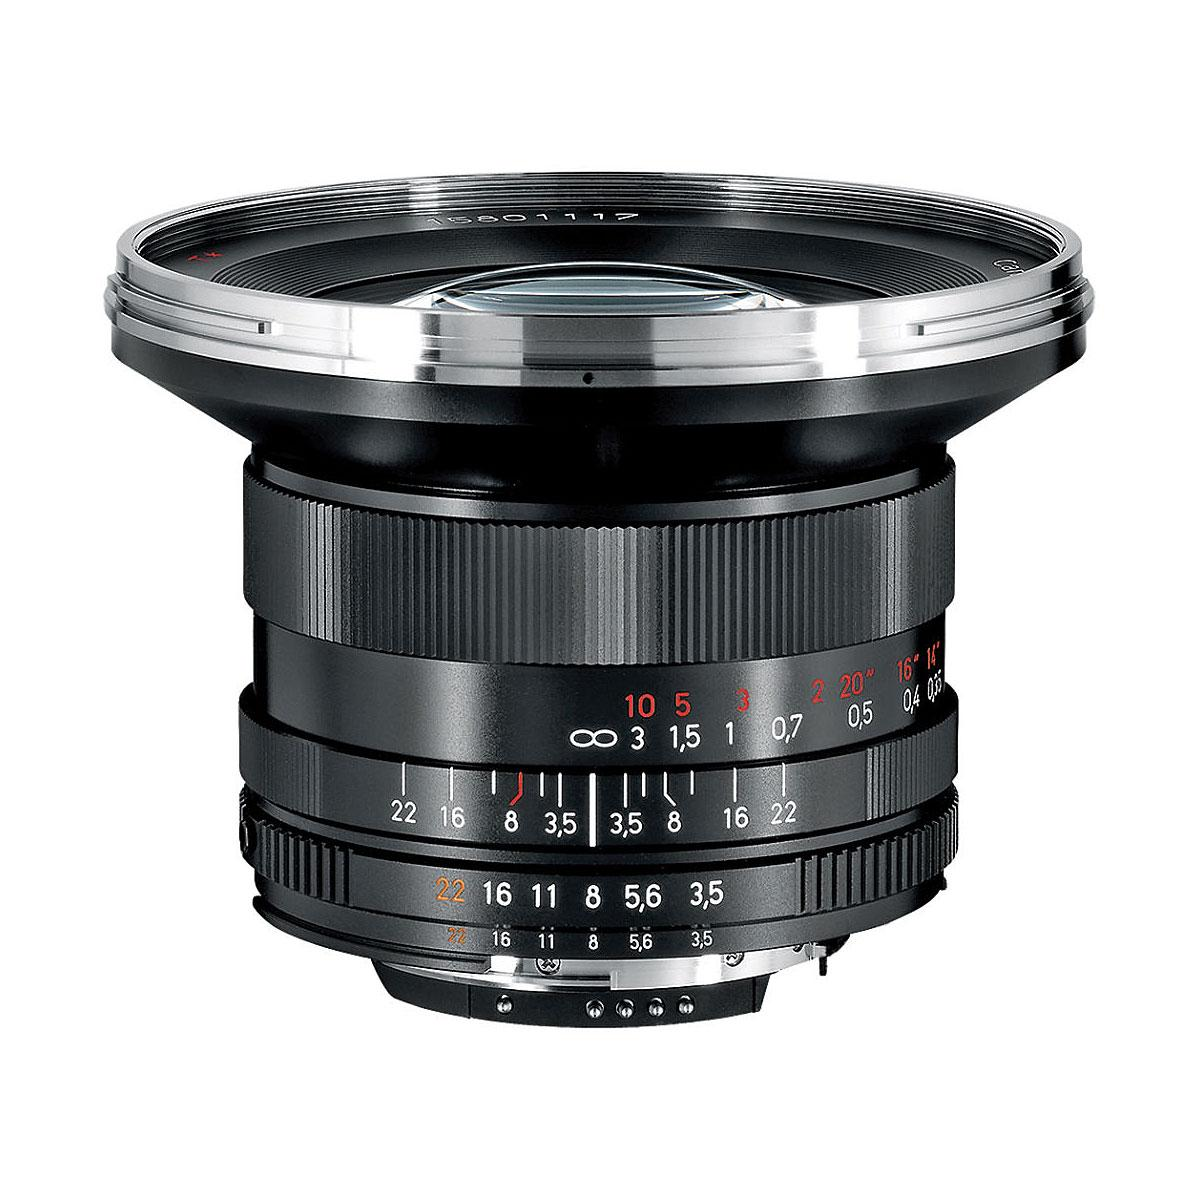 Zeiss 18mm f/3.5 Distagon T* – Nikon F